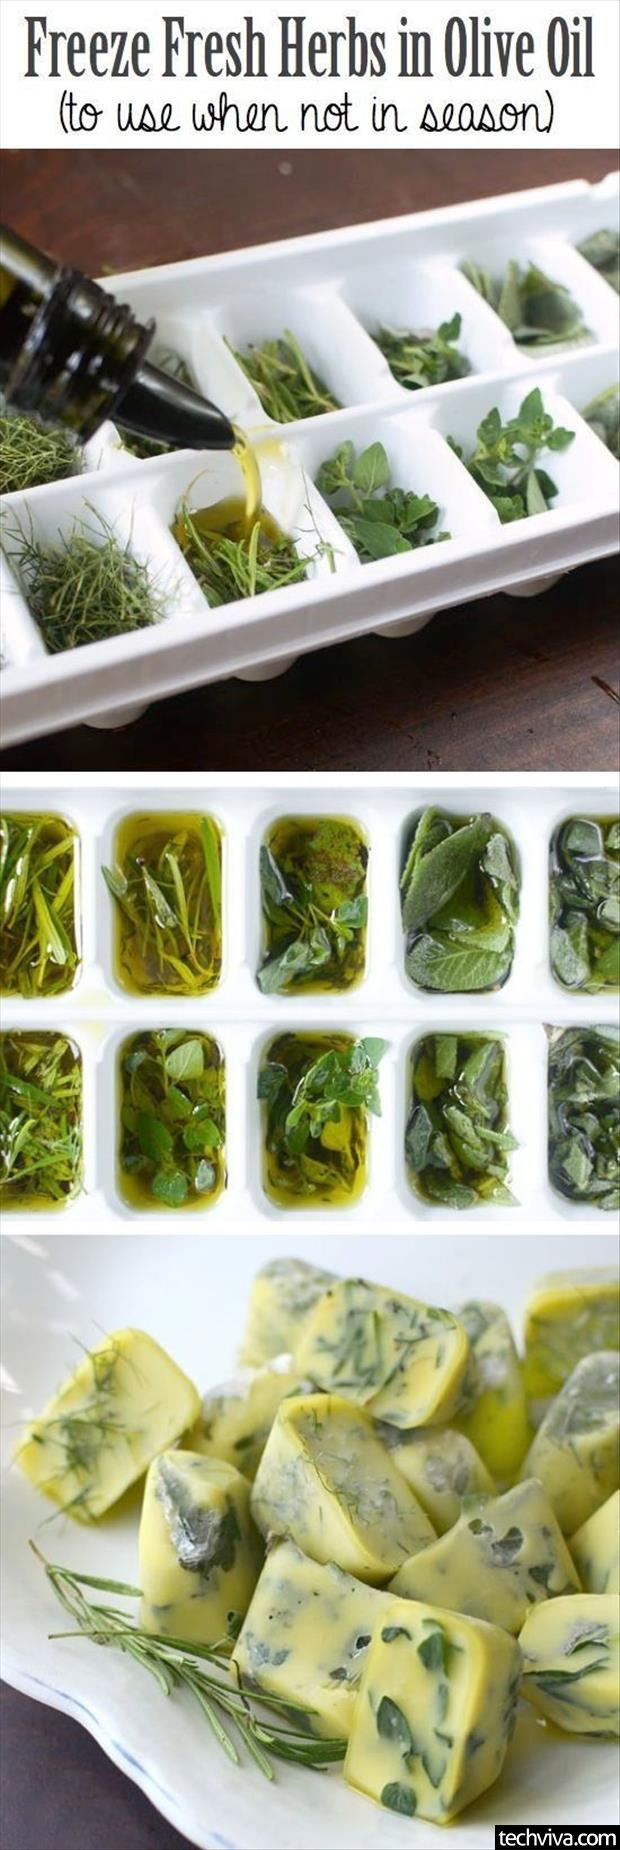 using-herbs-when-not-in-season